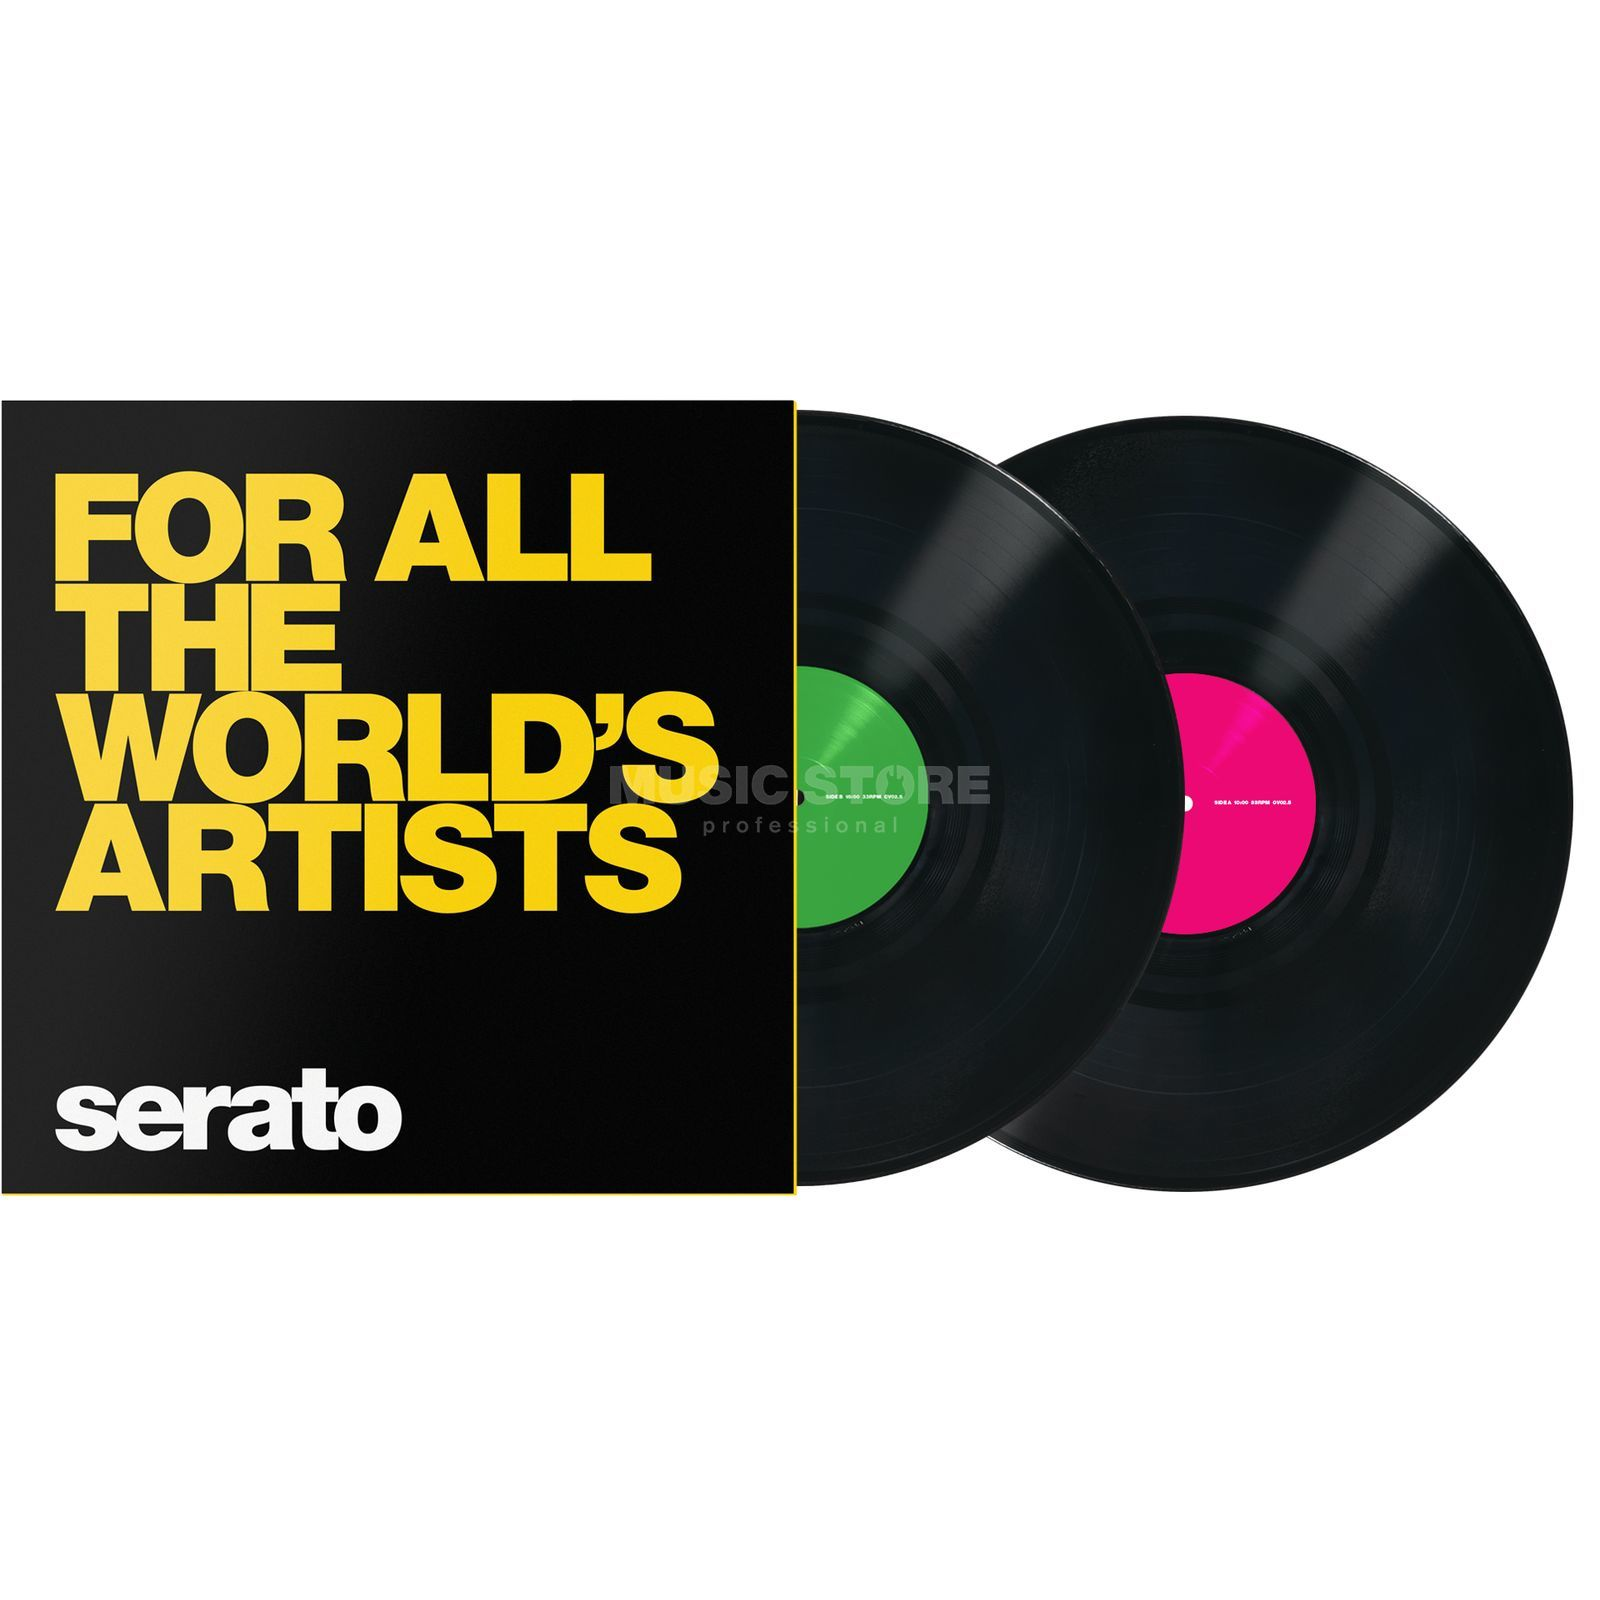 Serato Manifesto Control Vinyls noir, For All The Worlds Image du produit